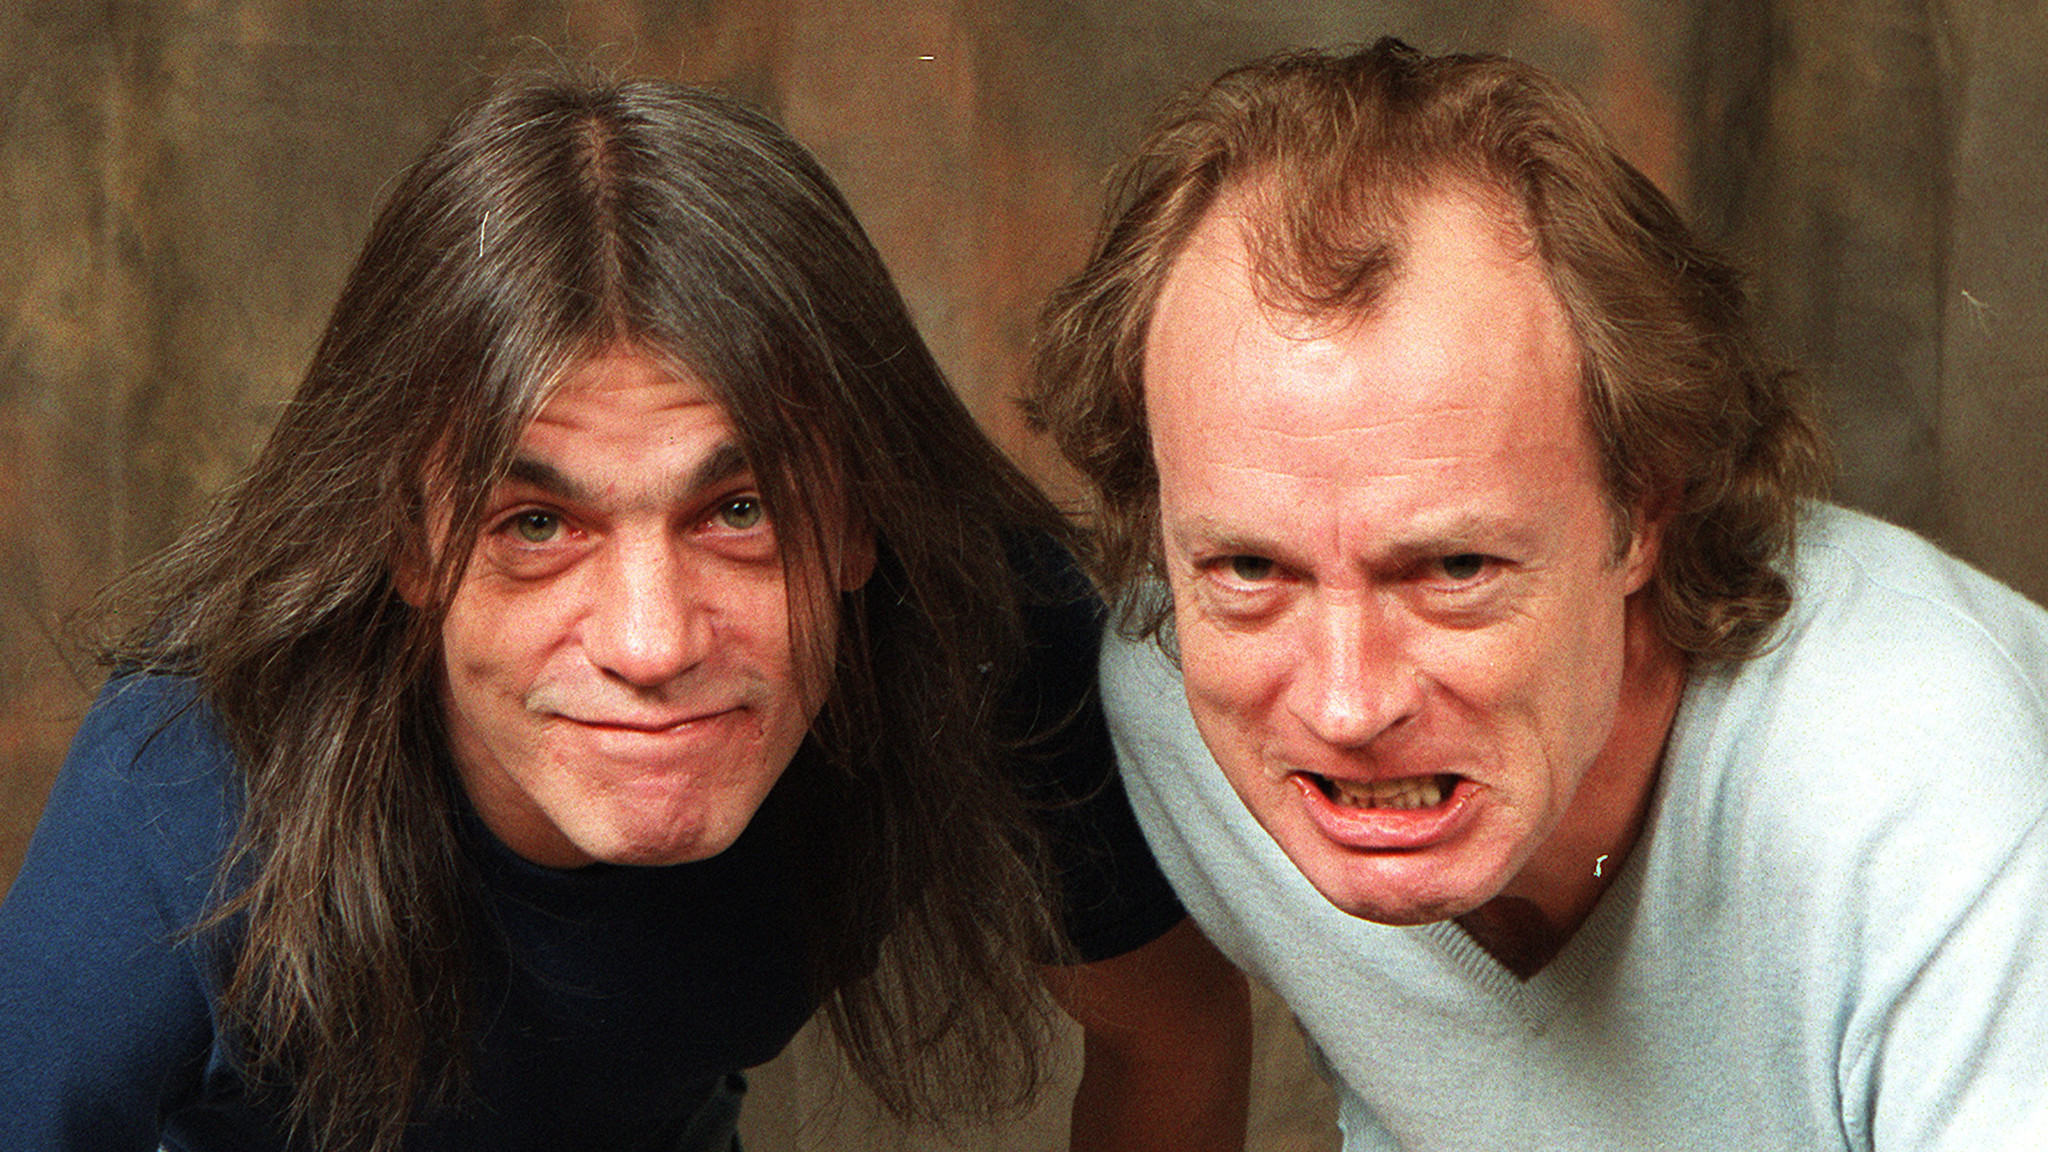 0d6eb41f malcolm and angus young photo jaime sabau for the l.a. times